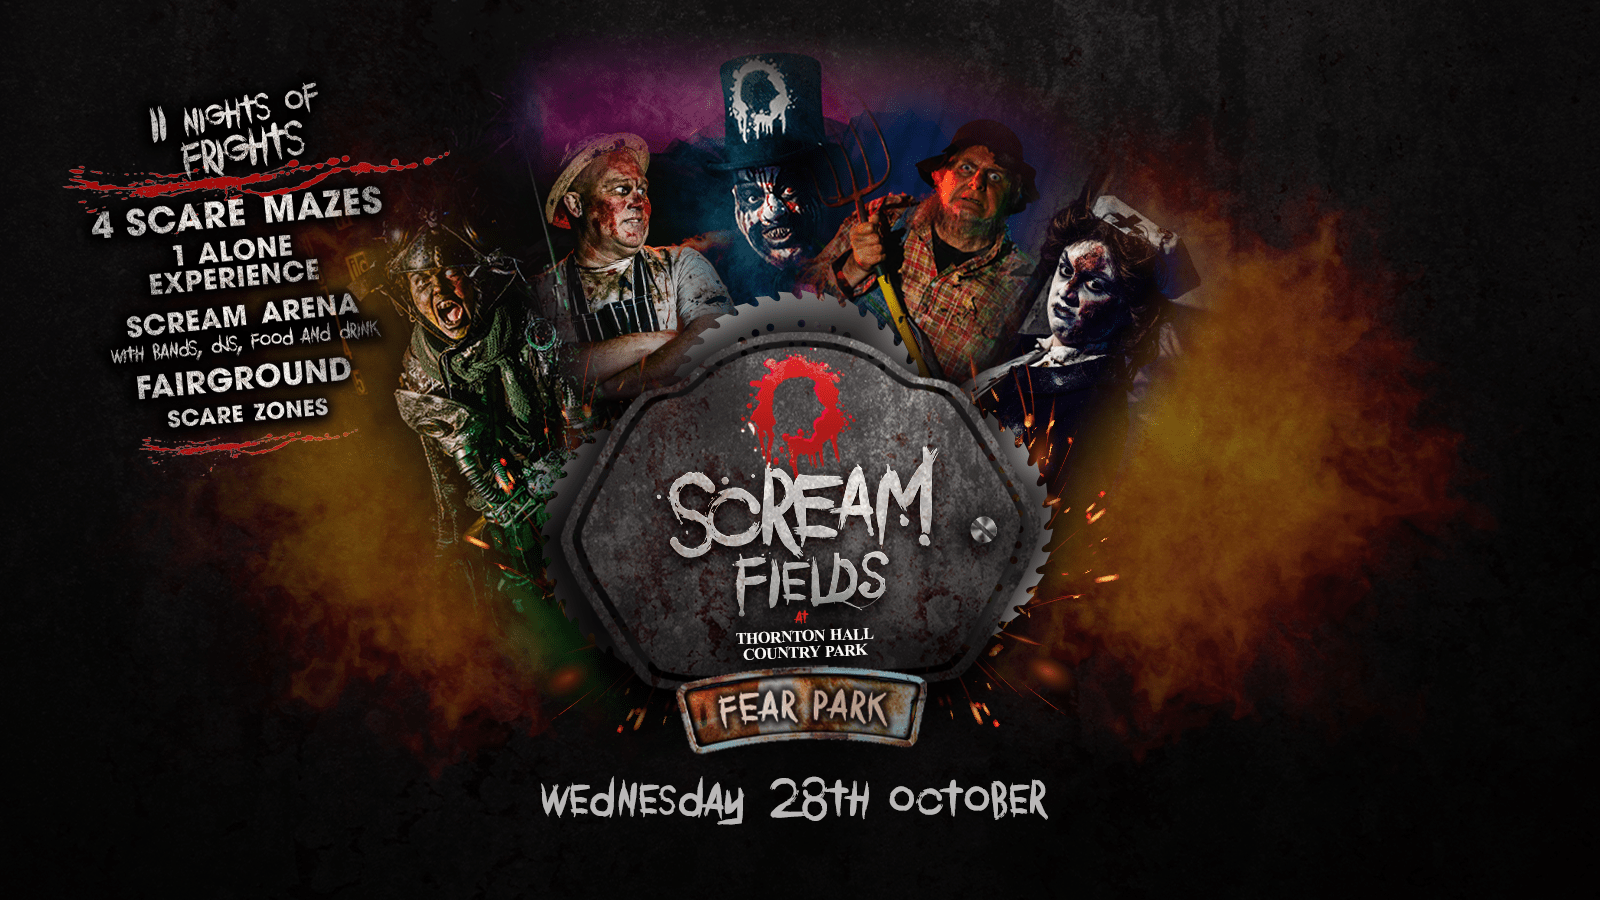 7.30PM – Screamfields: Wednesday 28th October 2020